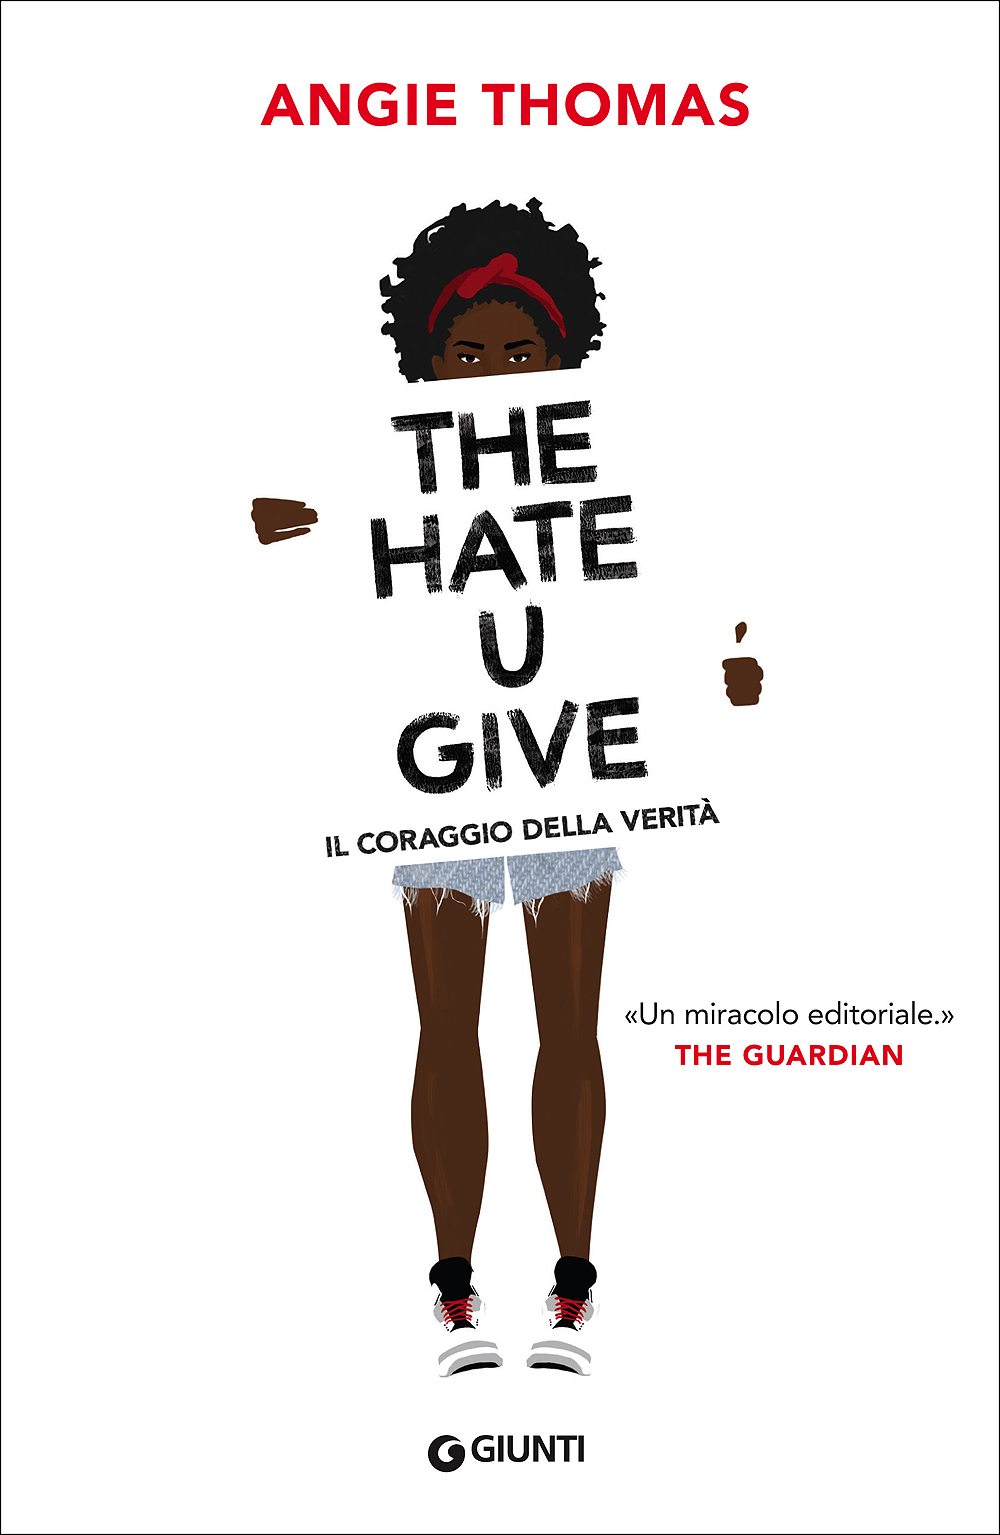 The Hate U Give is based on author Angie Thomas critically acclaimed young adult novel Protagonist Starr Carter portrayed in the film by actress Amanda